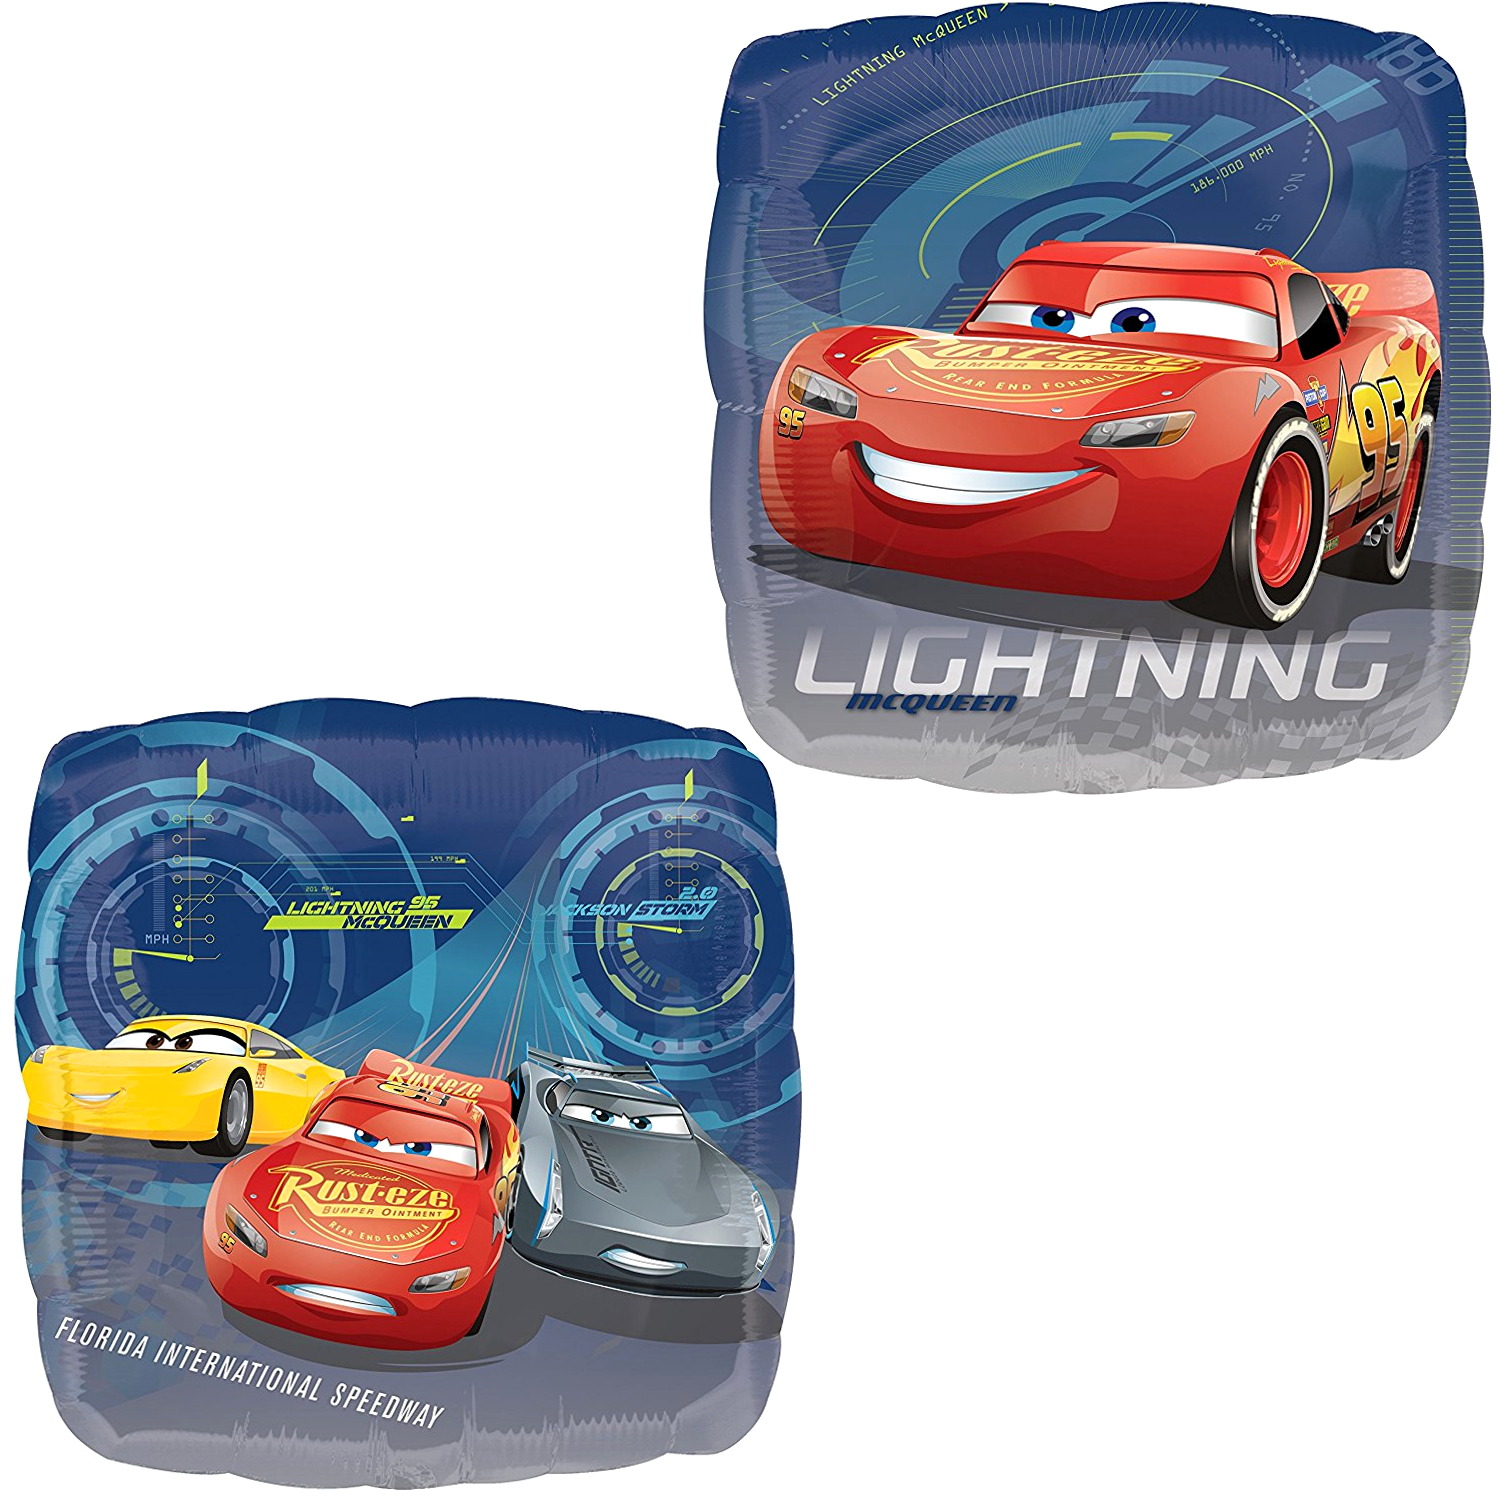 Anagram Cars 3 Lightning McQueen, Cruz, and Jackson Storm Double-Sided Square Foil Balloon, 17 inches, 1 count